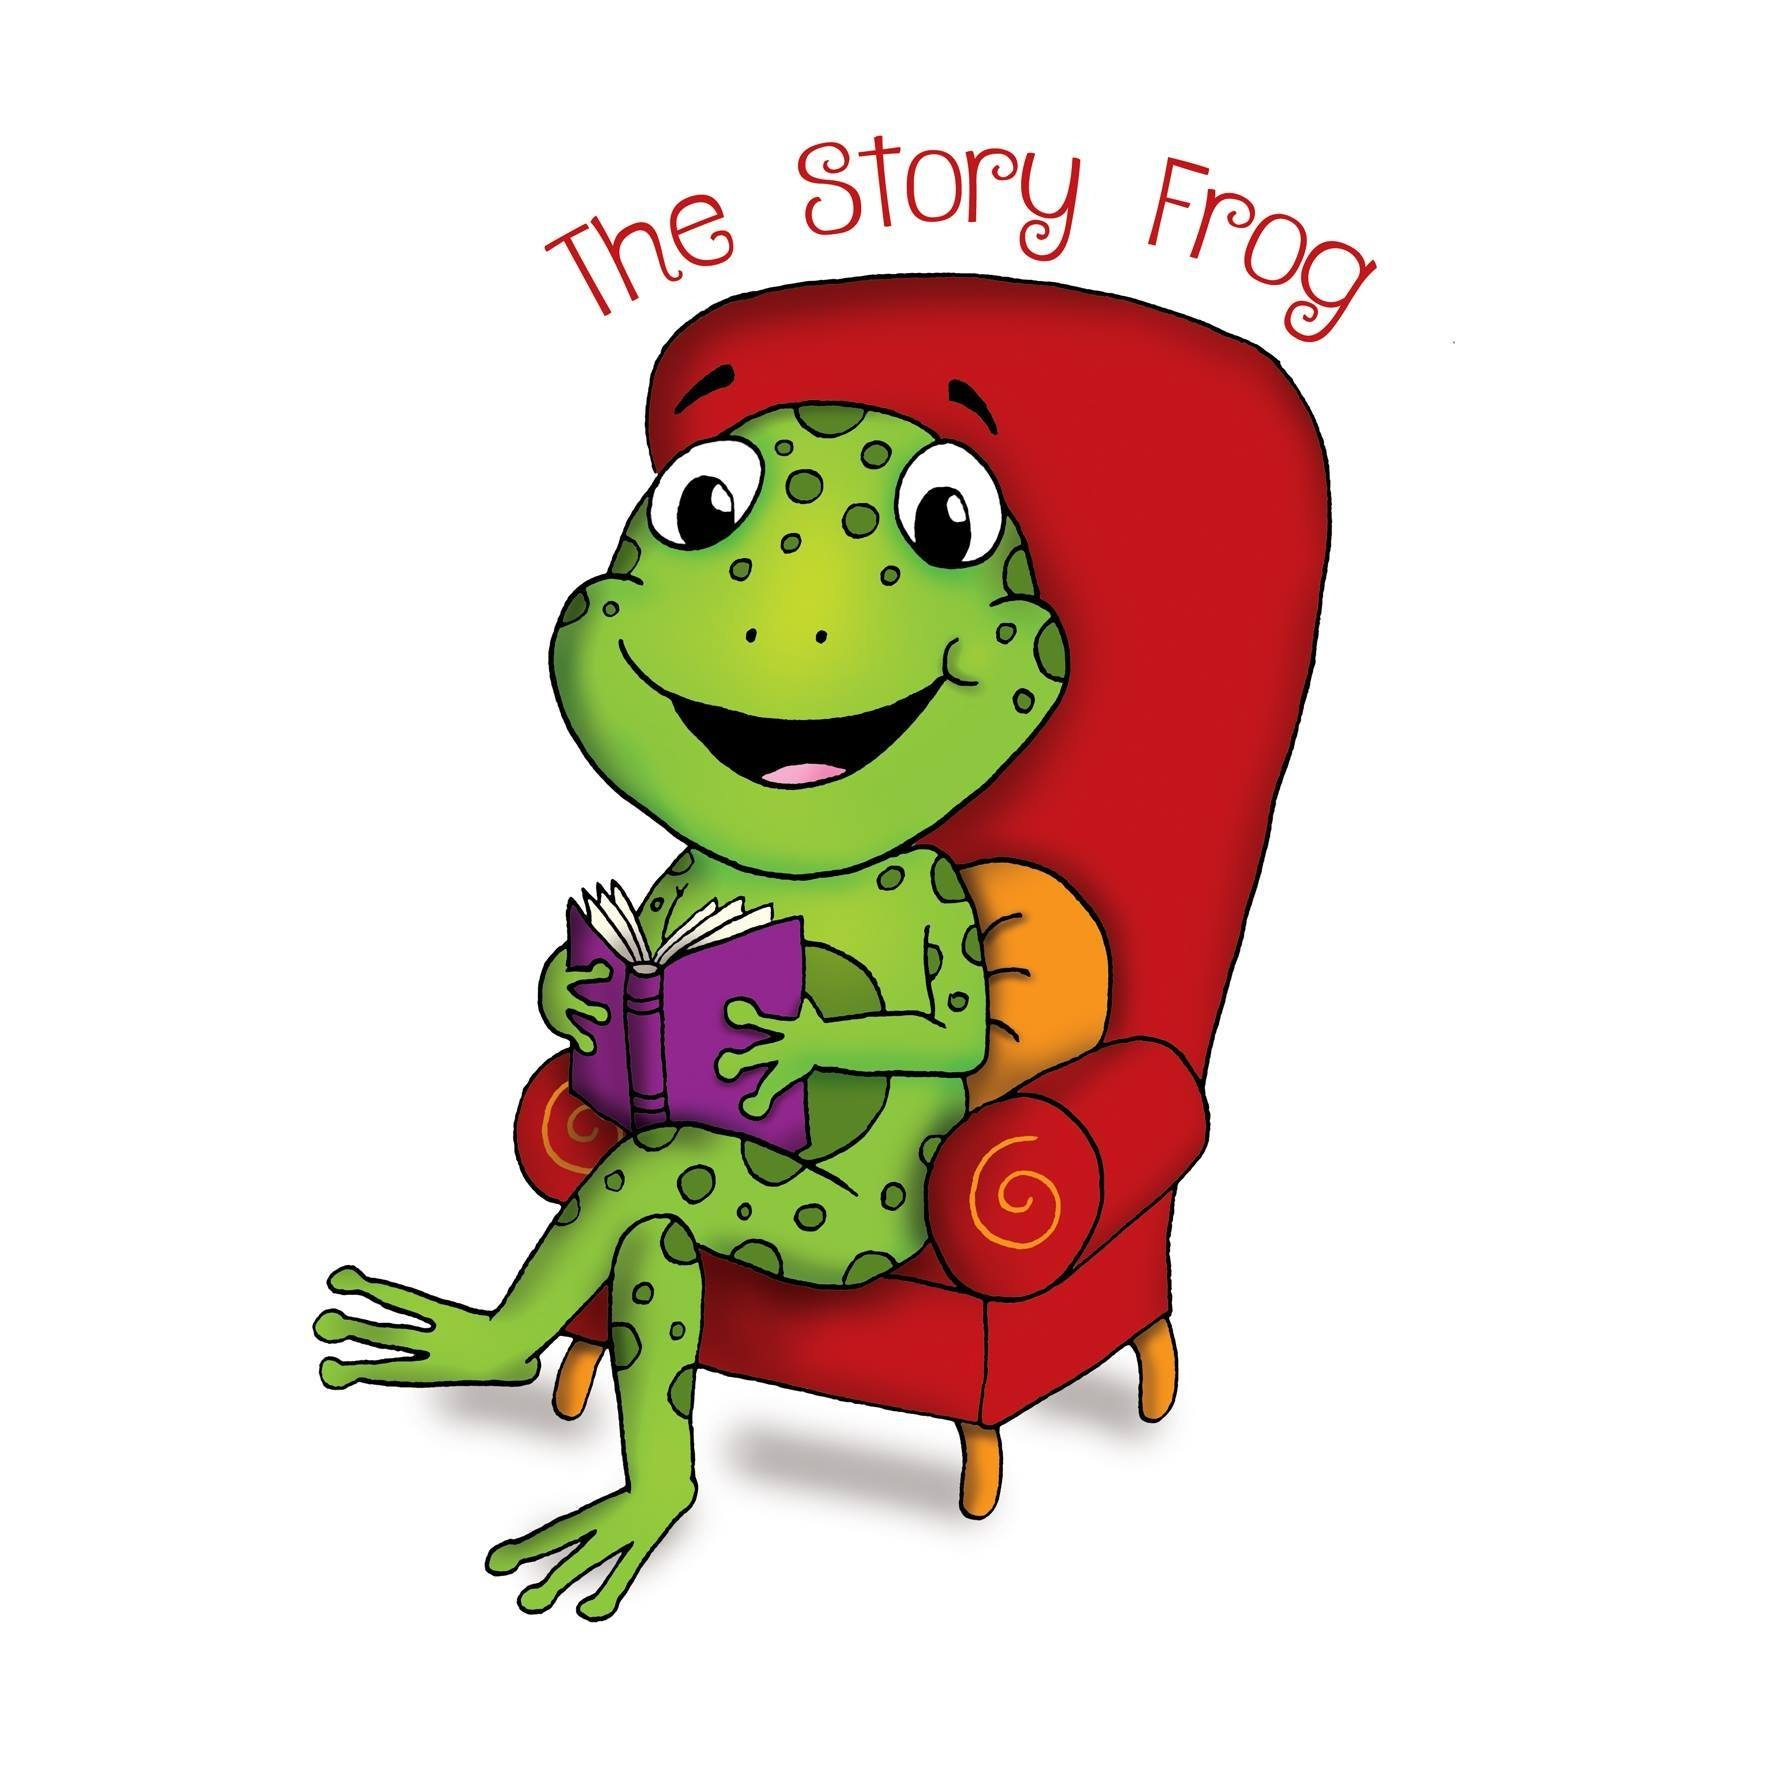 The Story Frog Oxford's logo